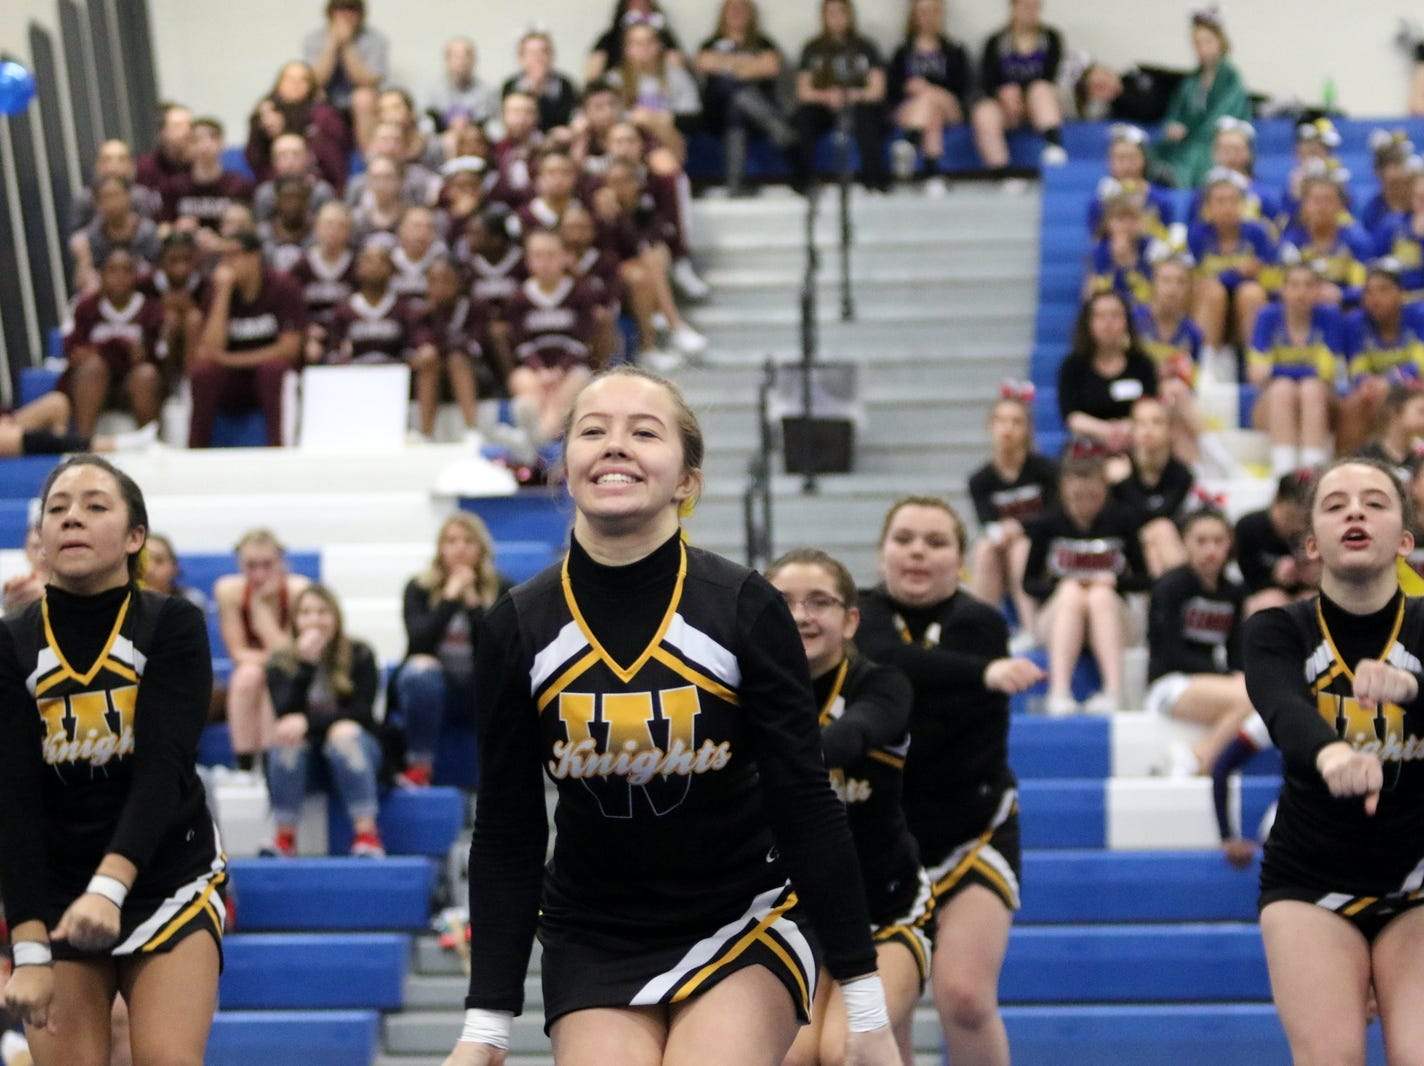 Windsor varsity cheerleaders compete at the STAC Winter Cheer Championships on Feb. 16, 2019 at Horseheads Middle School.